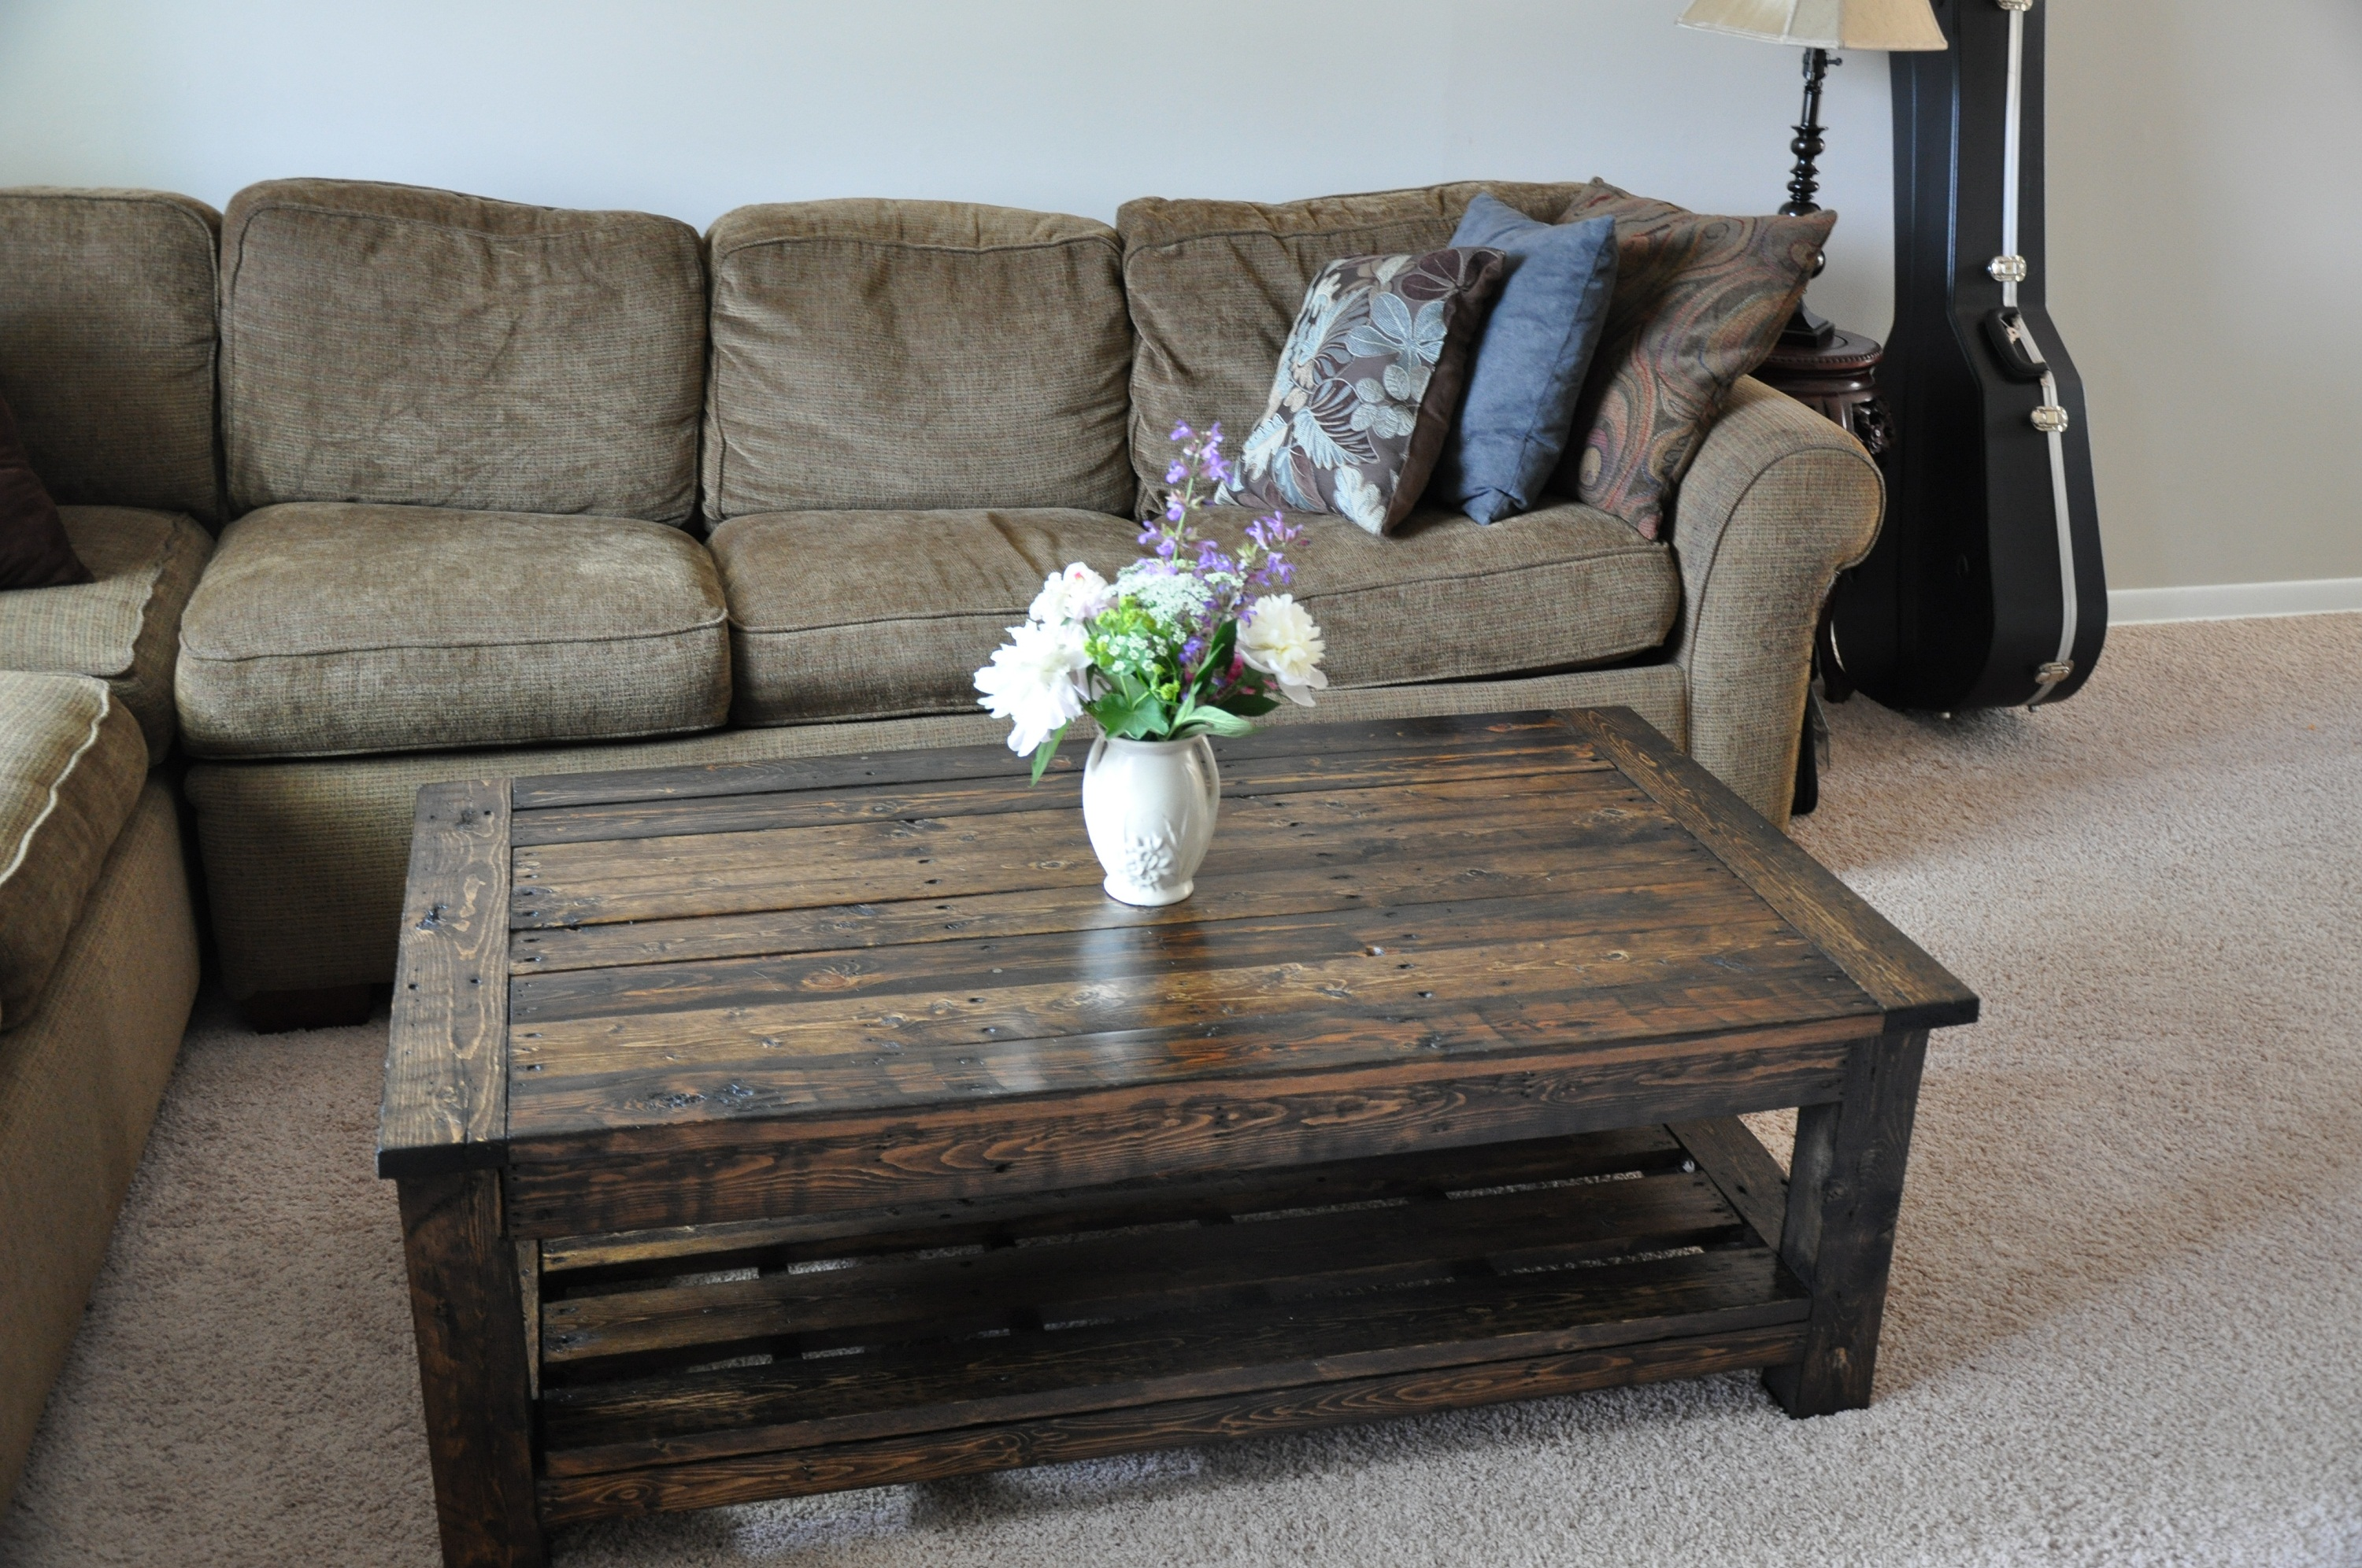 diy pallet coffee tables guide patterns table furniture end ashley porter entertainment center glass nesting target stackable outdoor inch steel pipe brass dining behind sofa